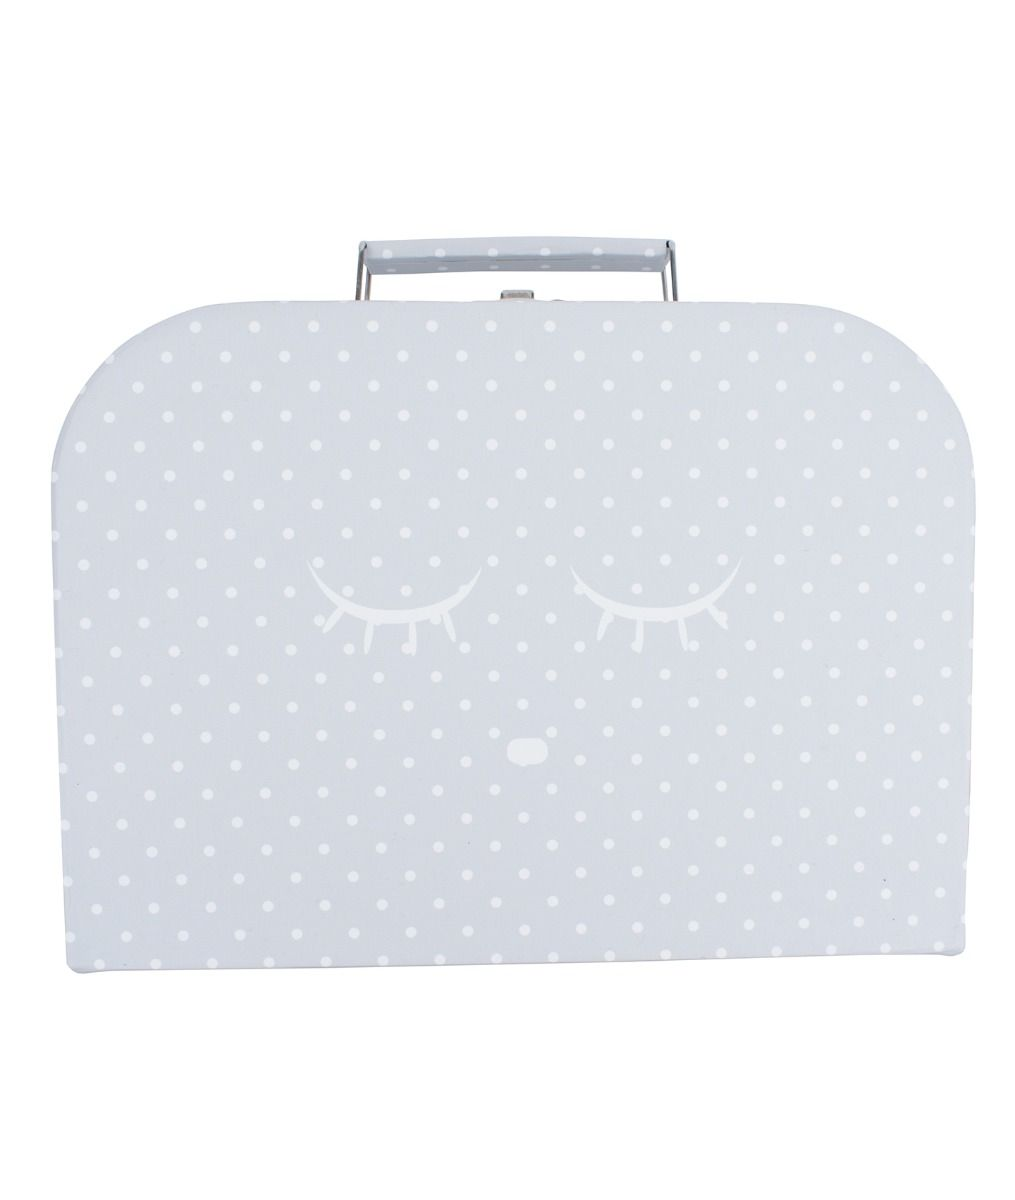 Livly SLEEPING TRUNK-GREY M